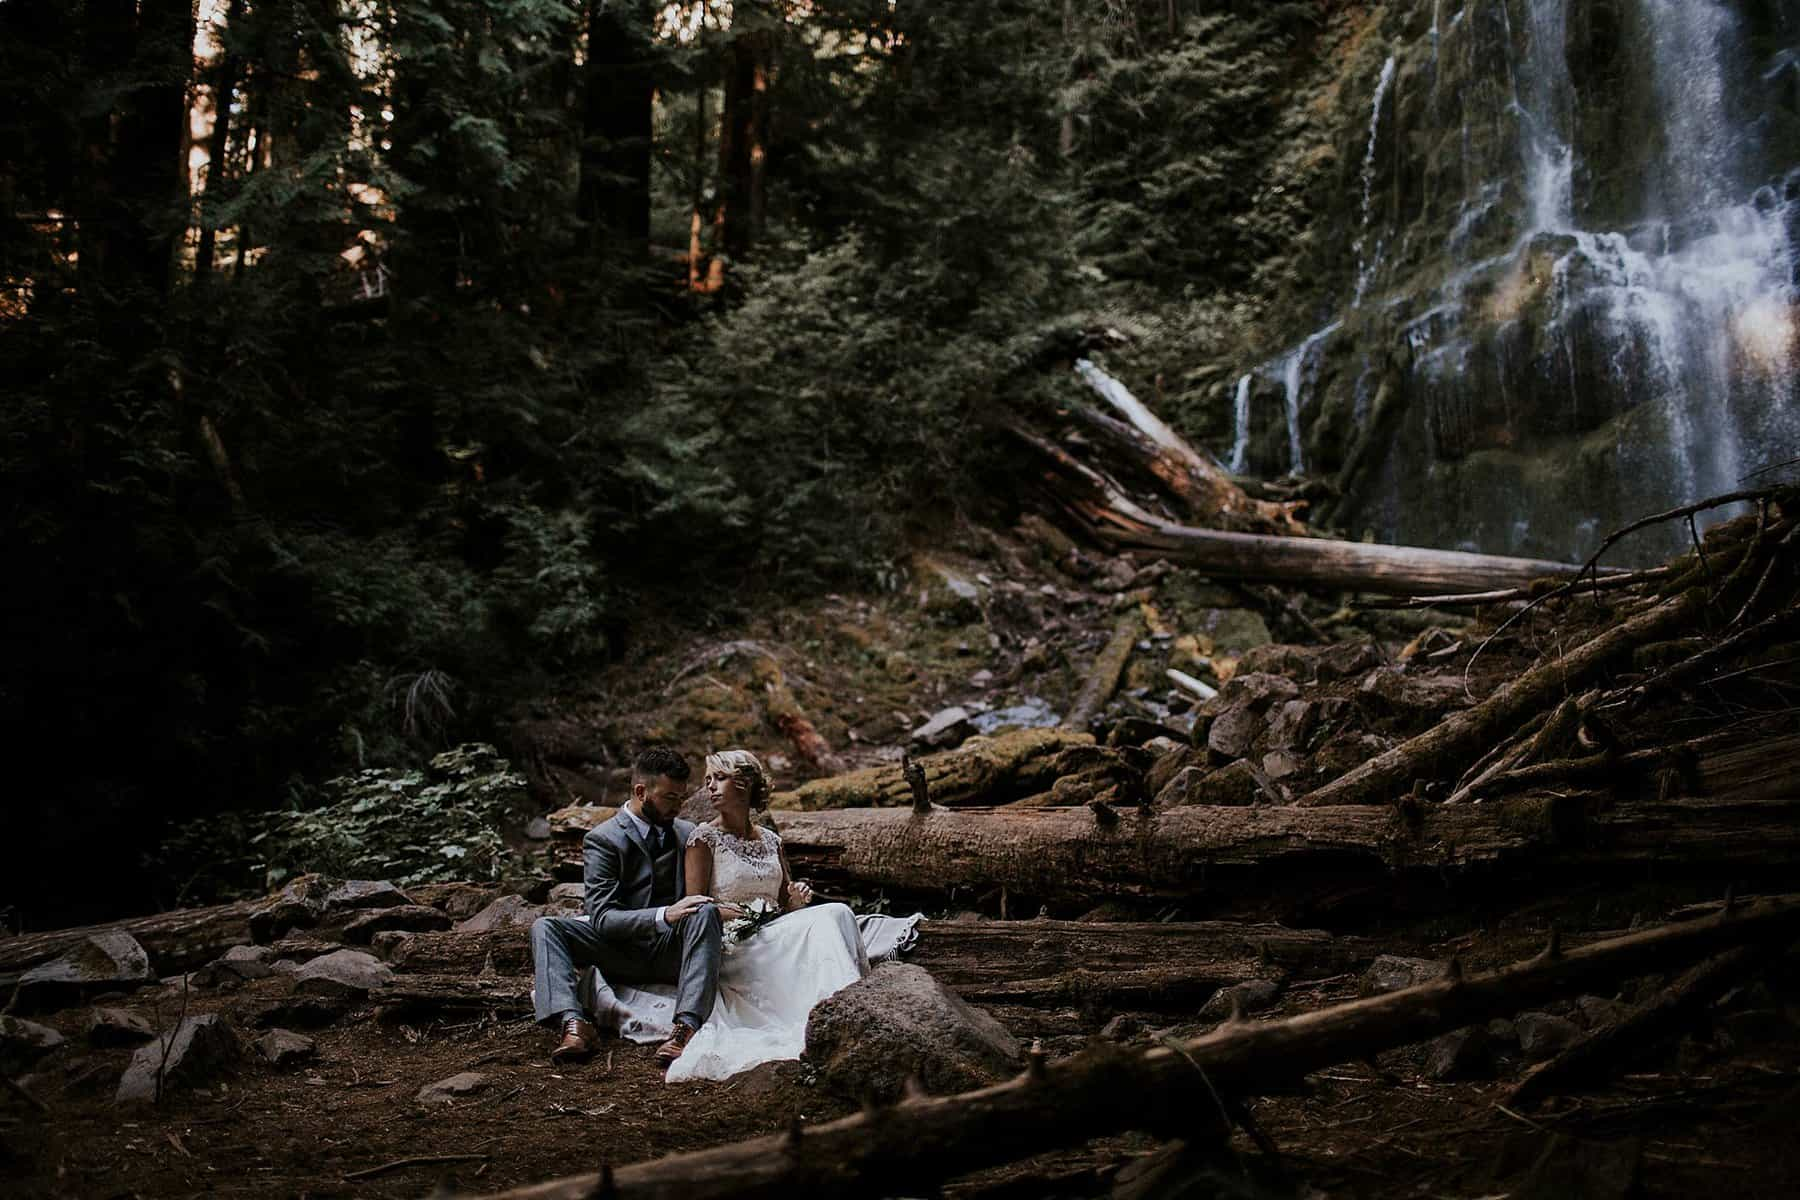 bend-central-oregon-waterfall-adventure-wedding-elopement-005z